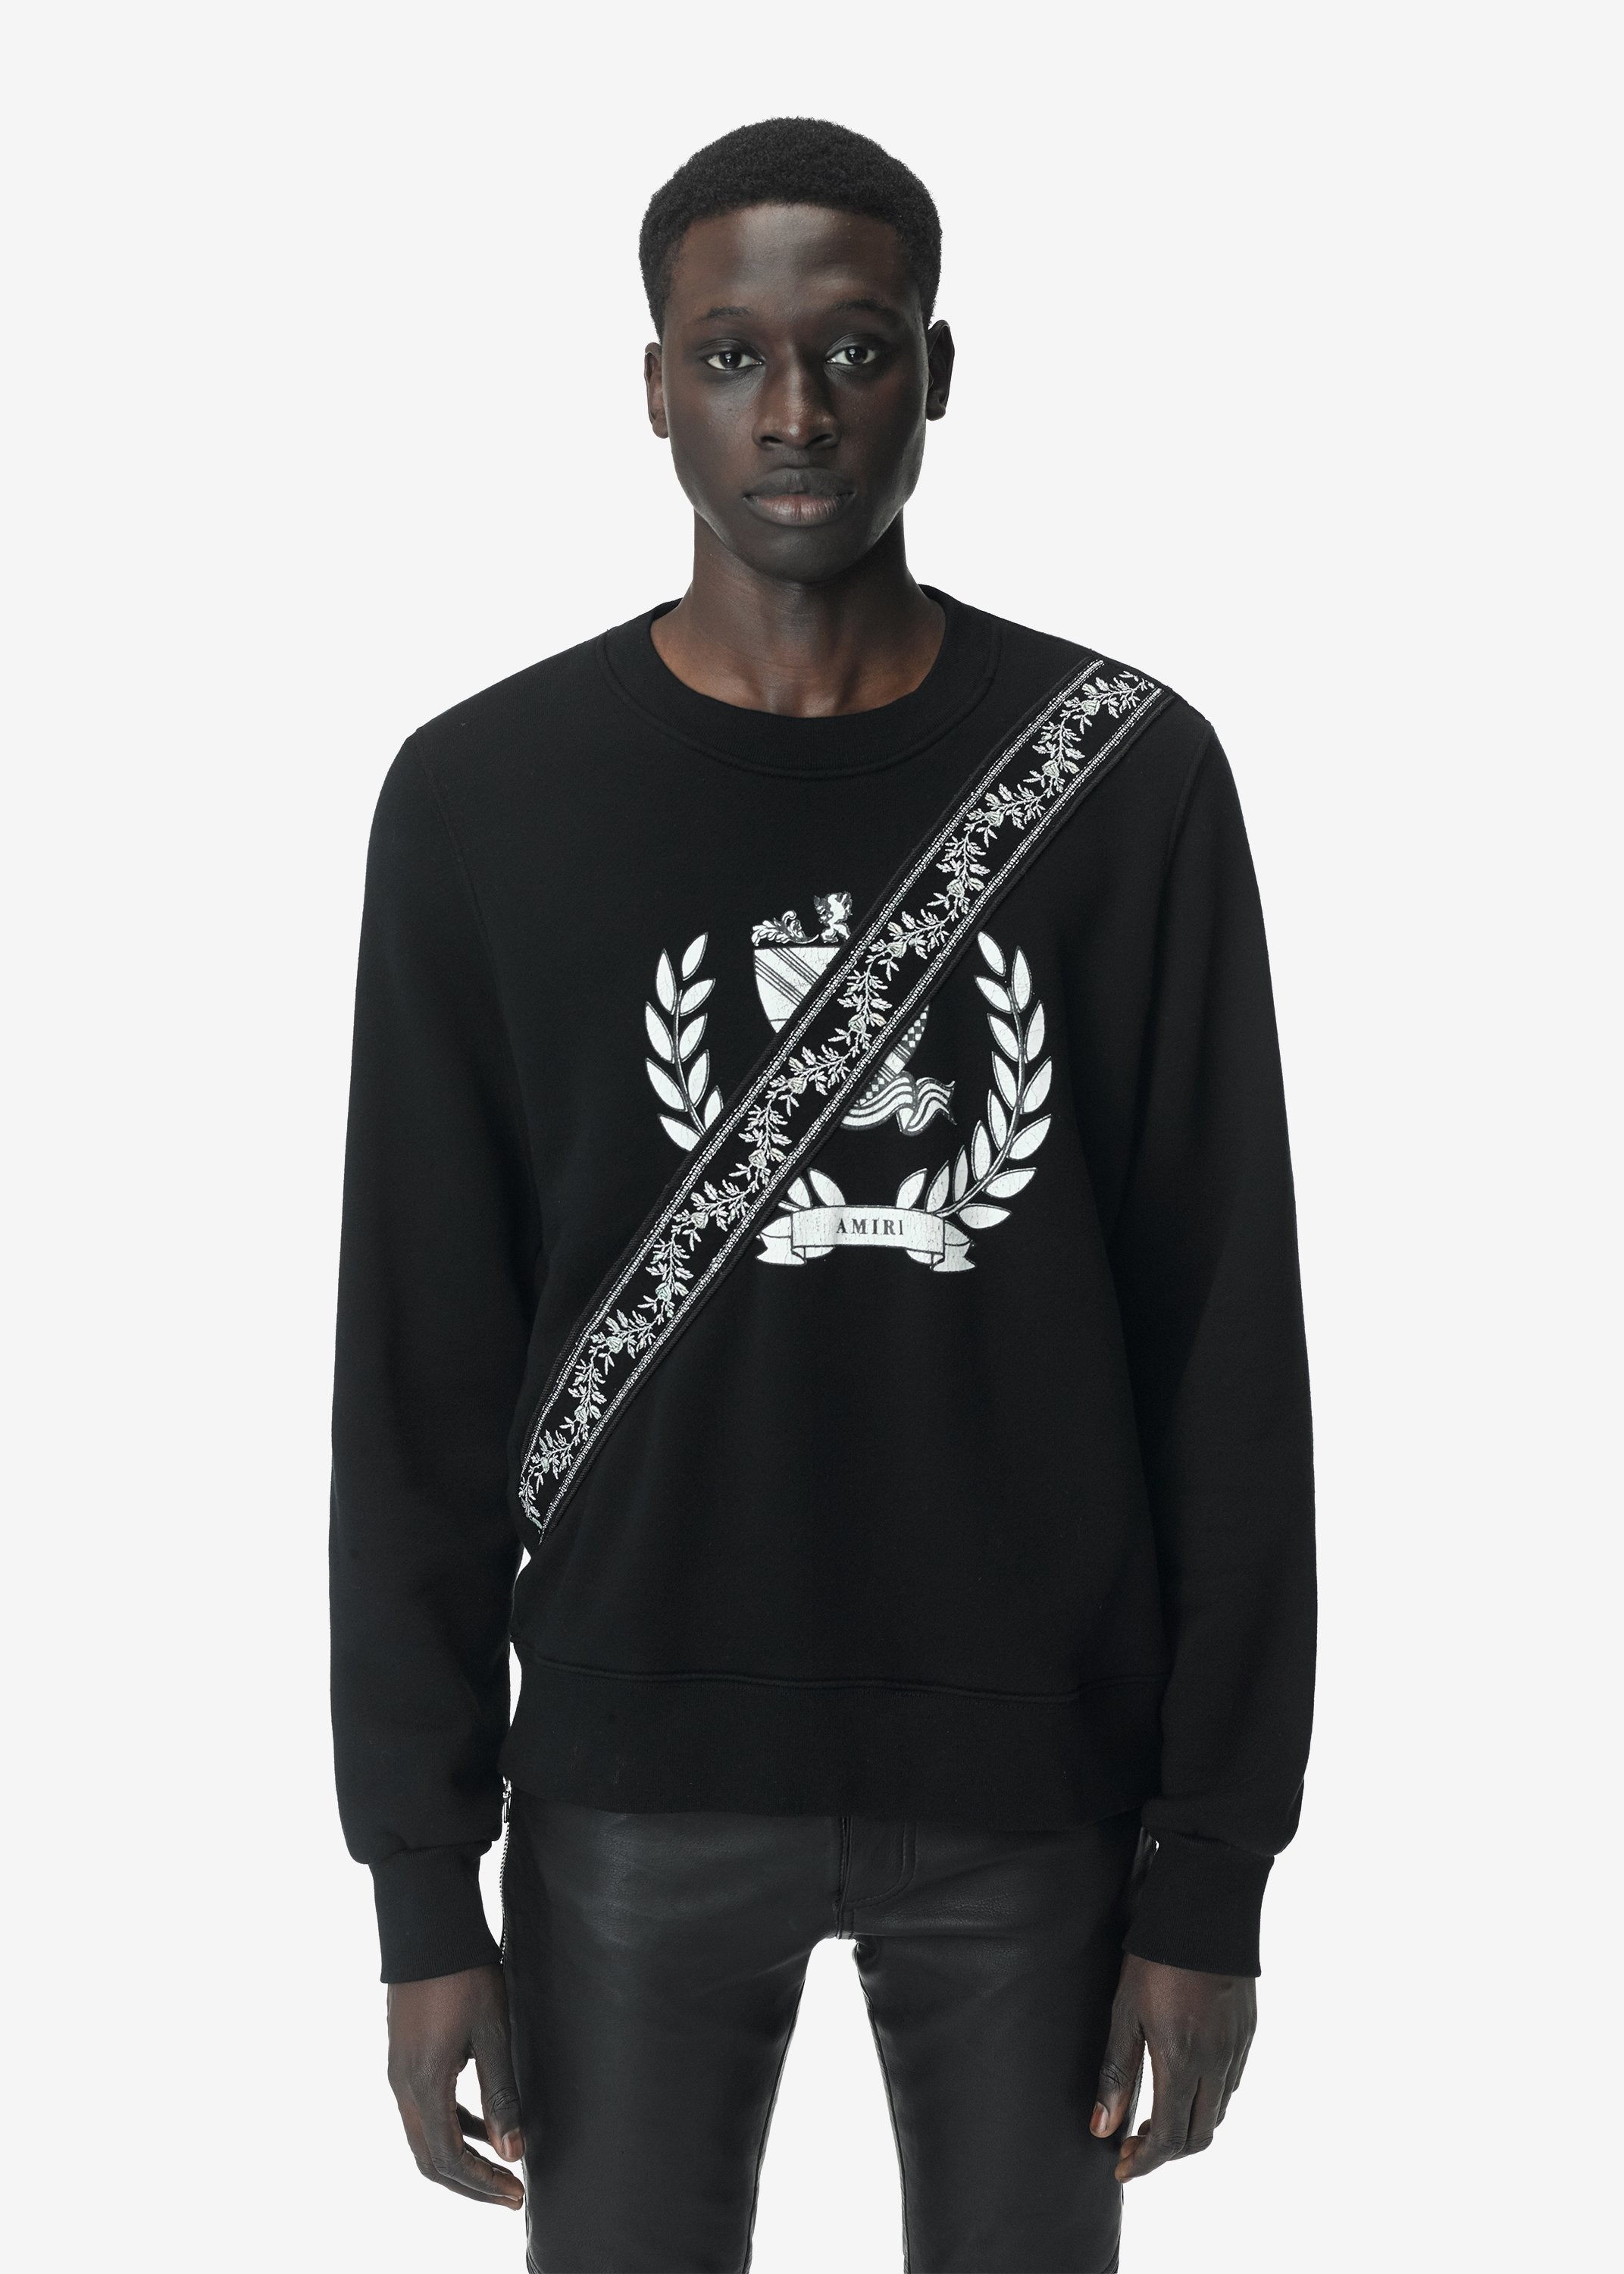 crest-guitar-strap-crewneck-web-exclusive-black-image-1